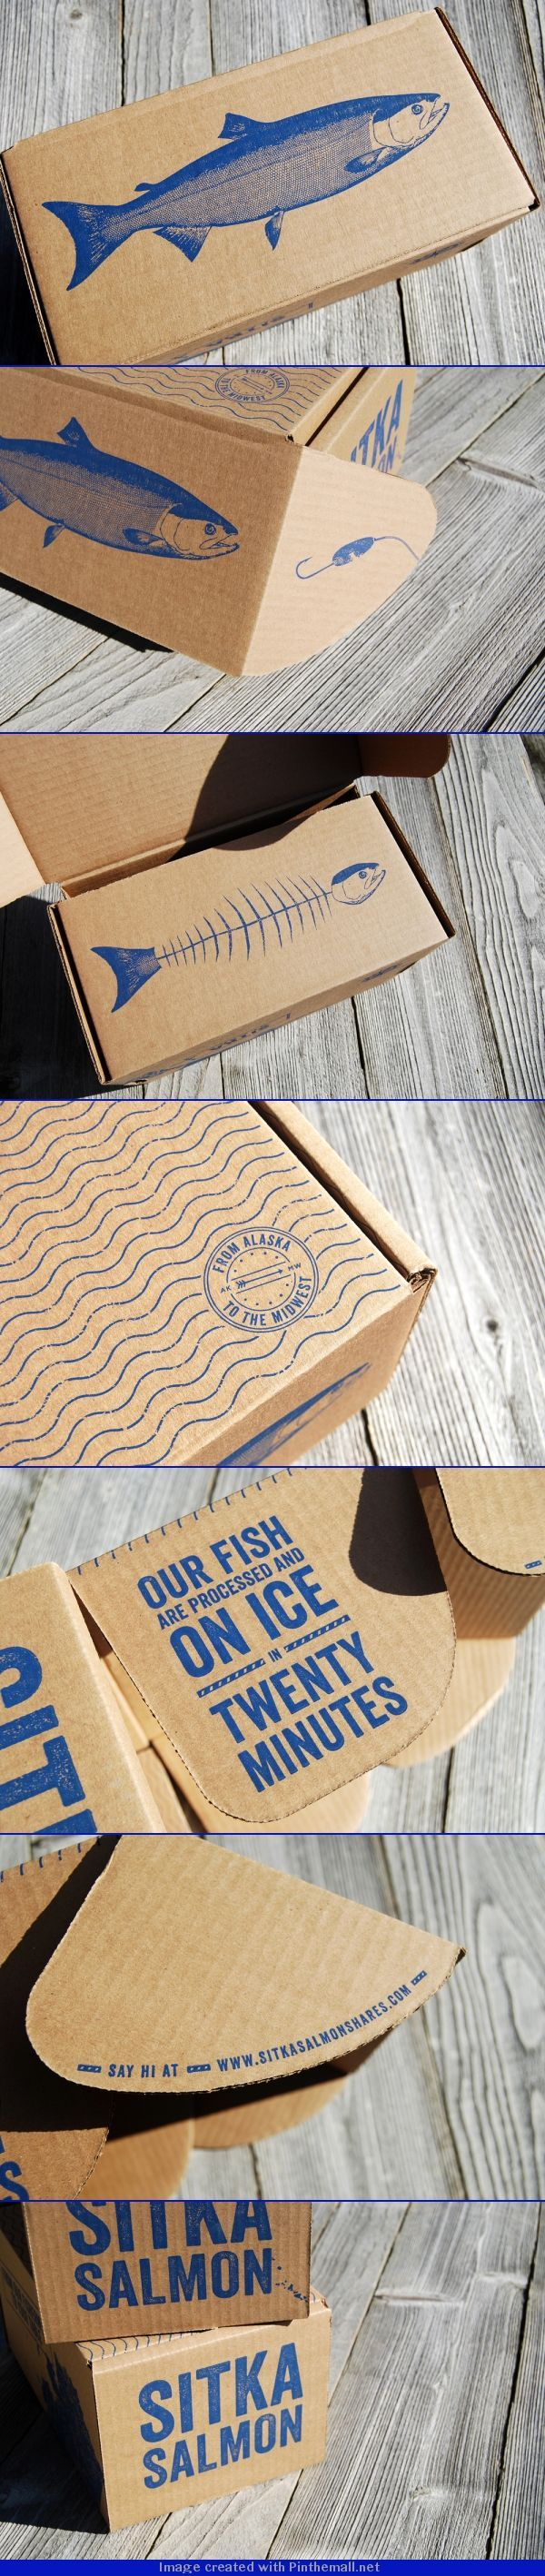 #packaging | Sitka Salmon